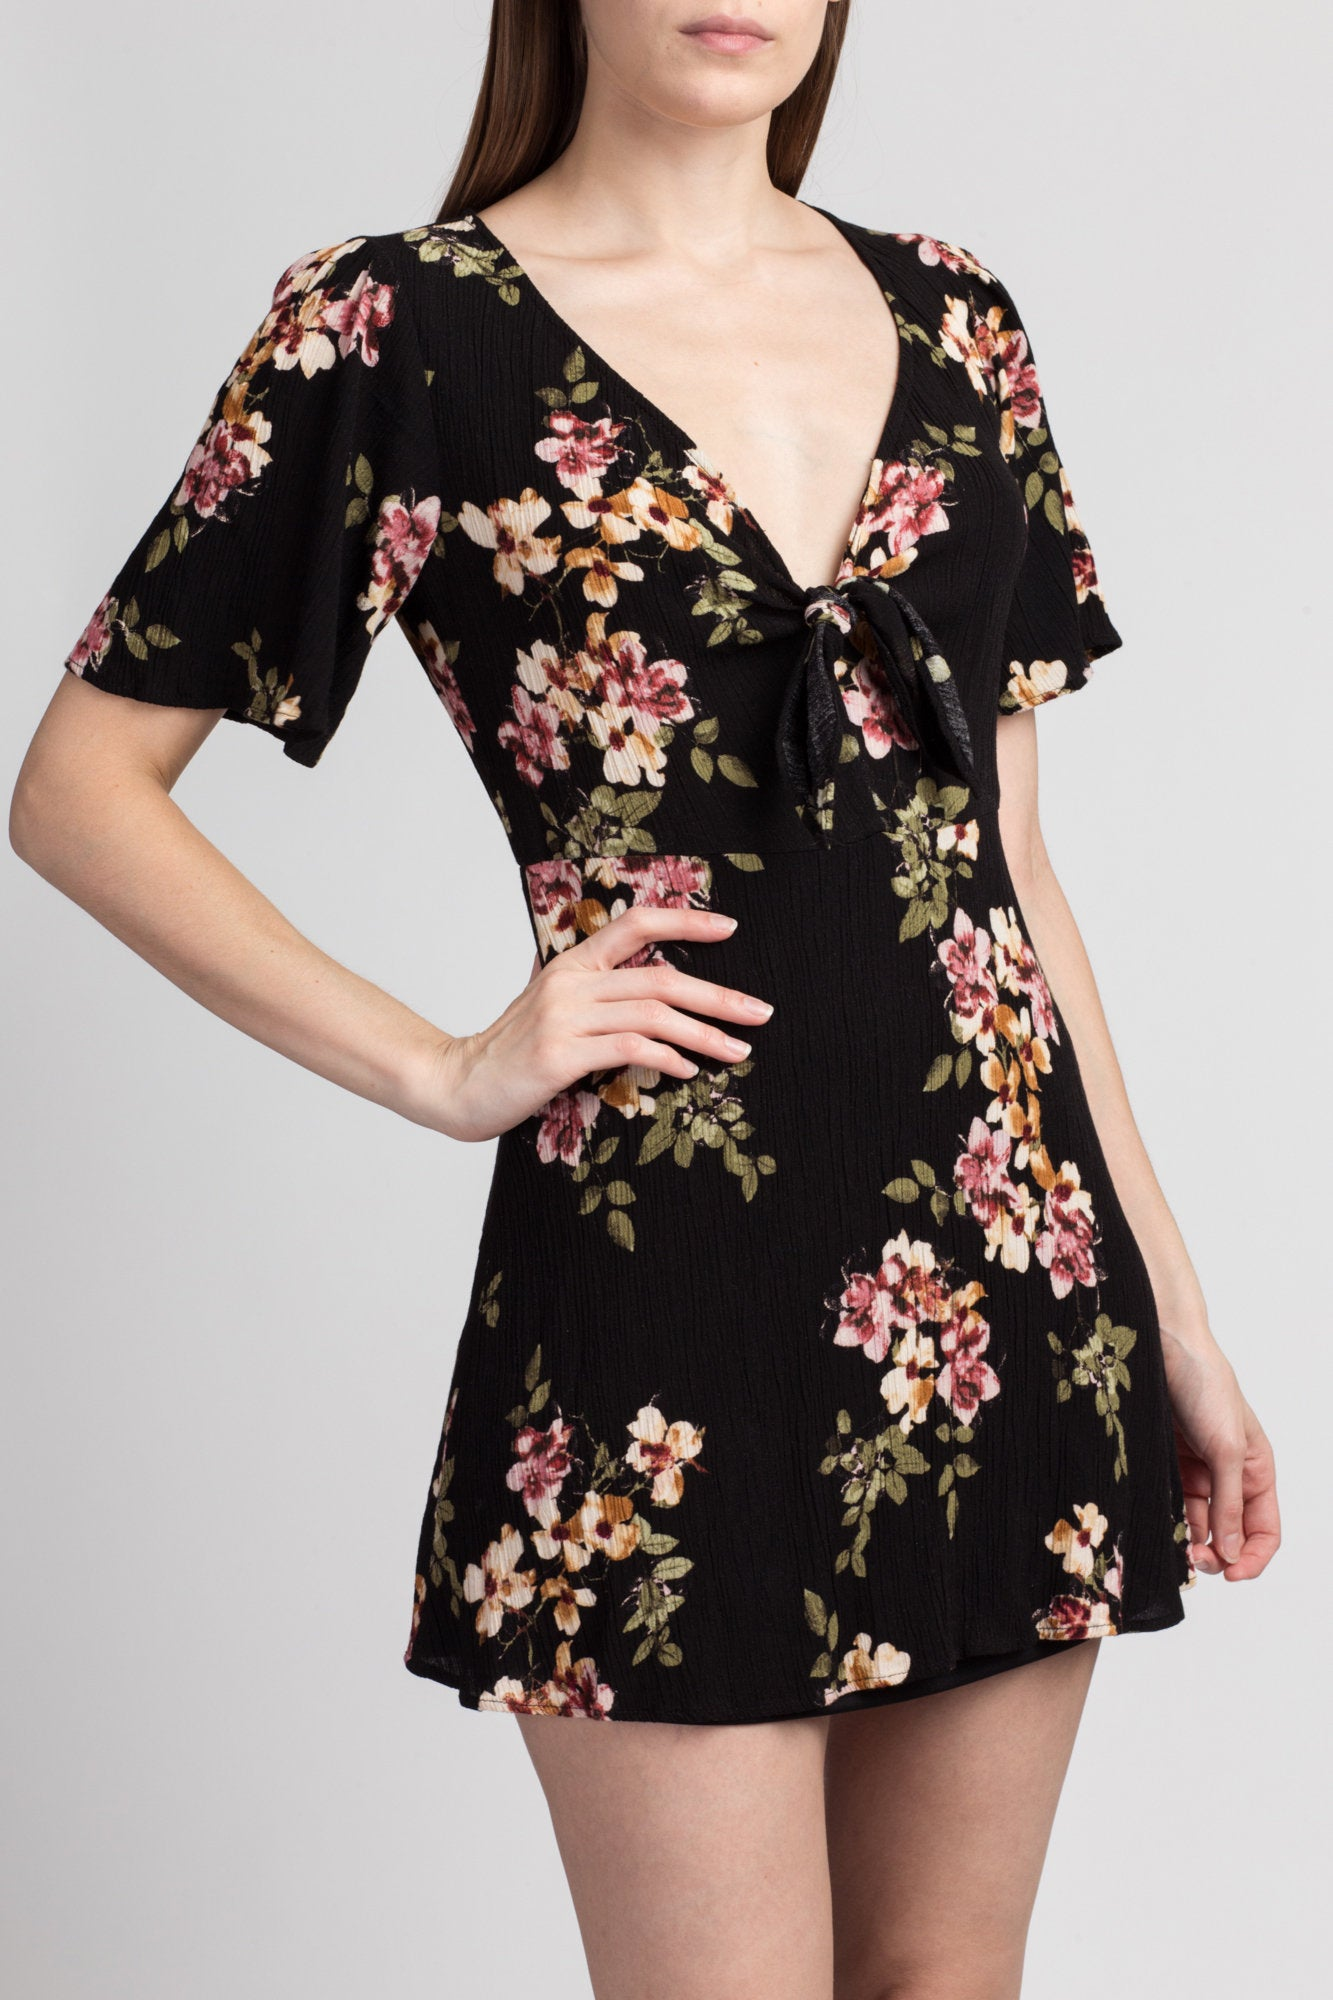 90s Boho Black Floral Mini Dress - Small